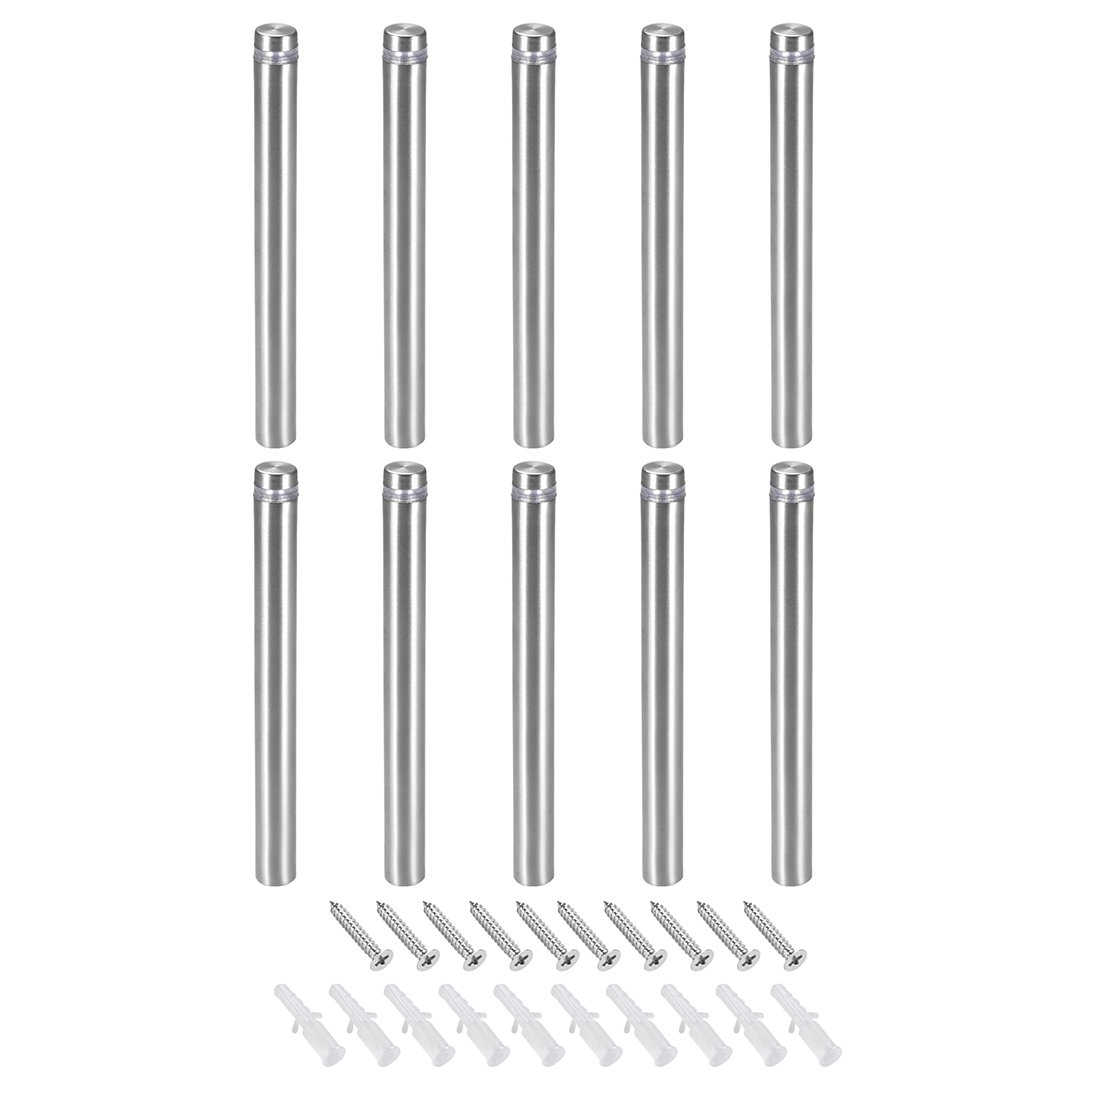 Glass Standoff Mount Stainless Steel Wall Standoff 12mm Dia 123mm Length 10 Pcs